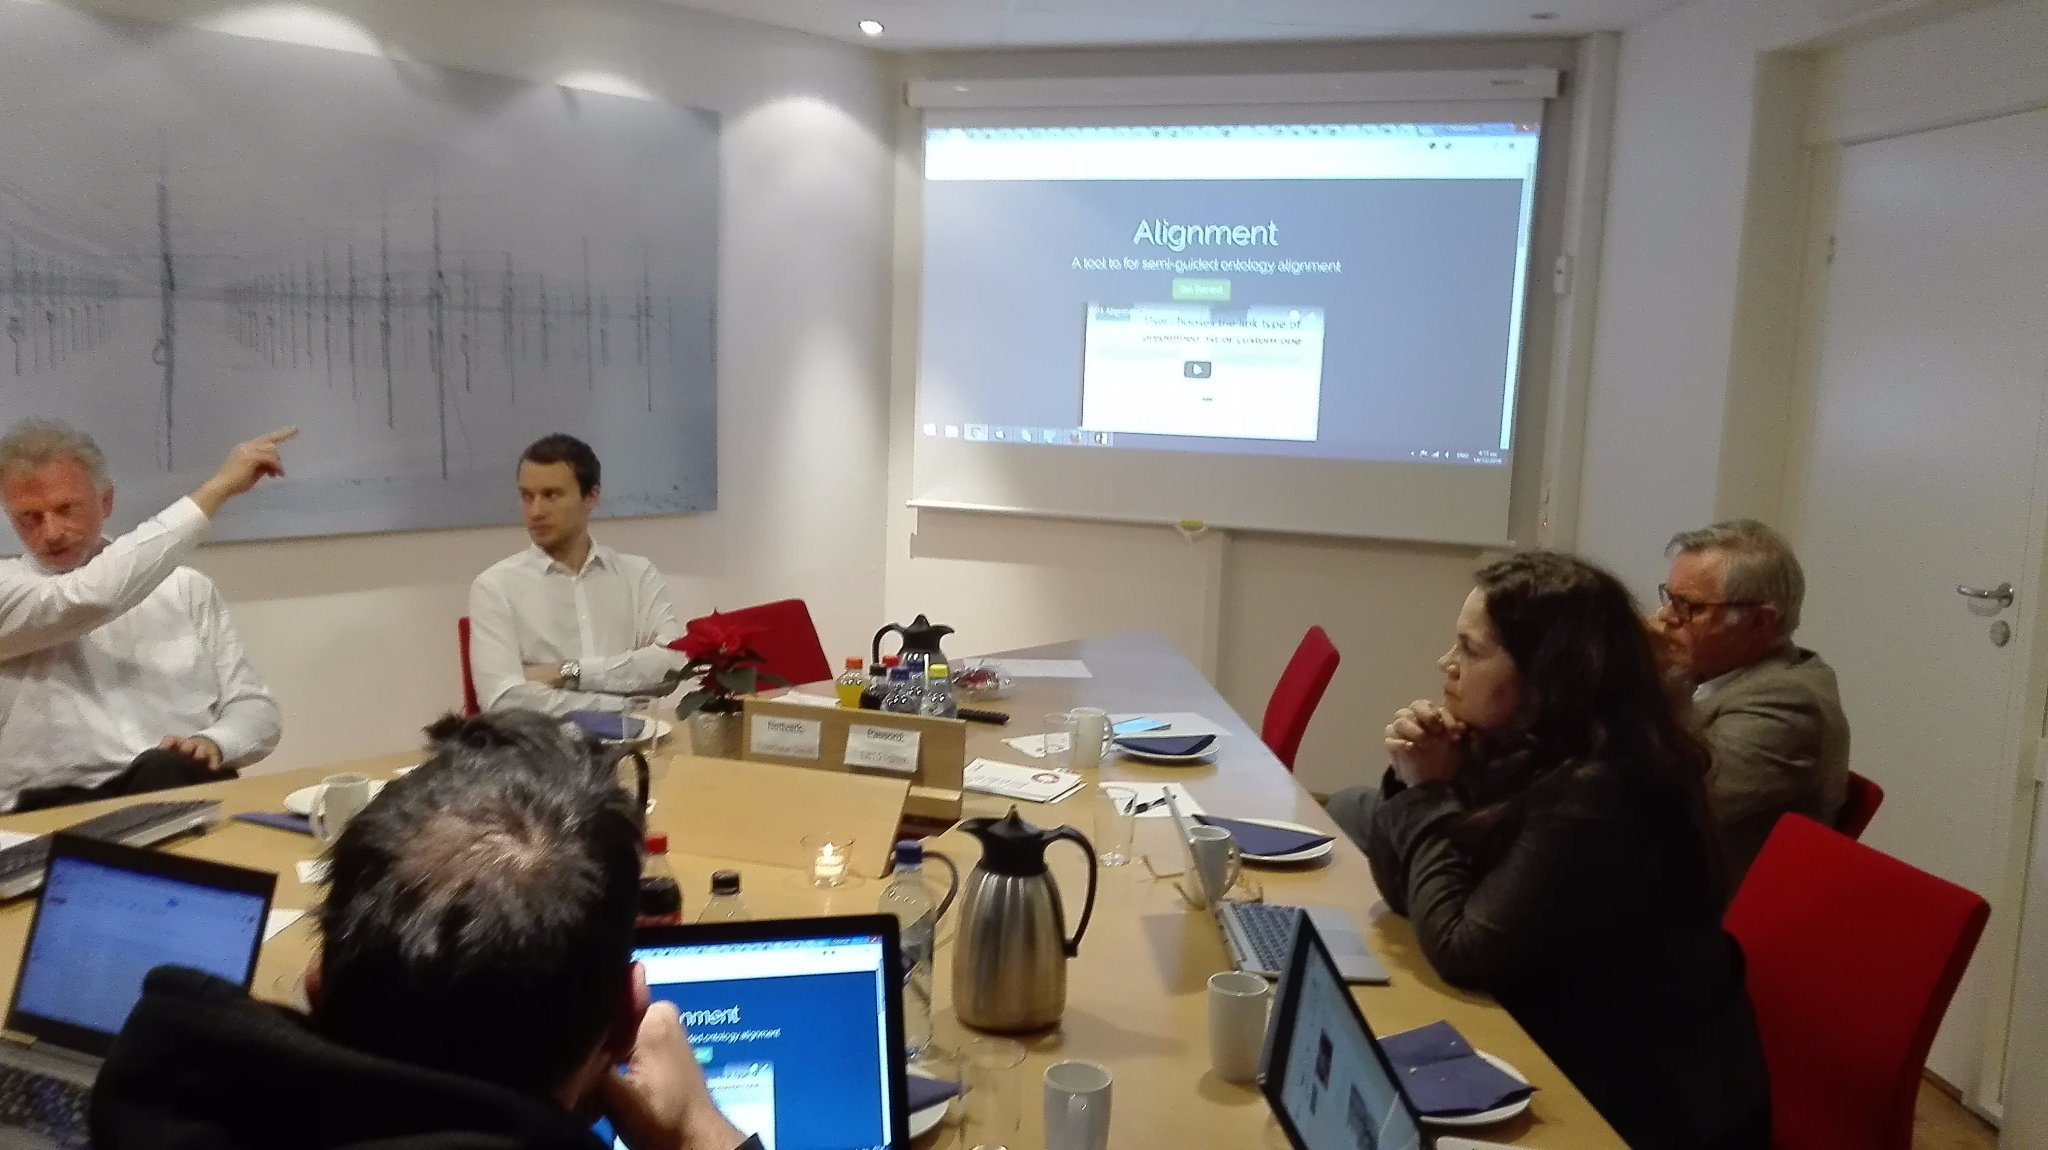 @bratsas presents Alignment https://t.co/5GJadQ0jAp tool for semi-guided ontology mapping during @lovdata meeting @WeRallCitizens https://t.co/vaRCFWqQuu